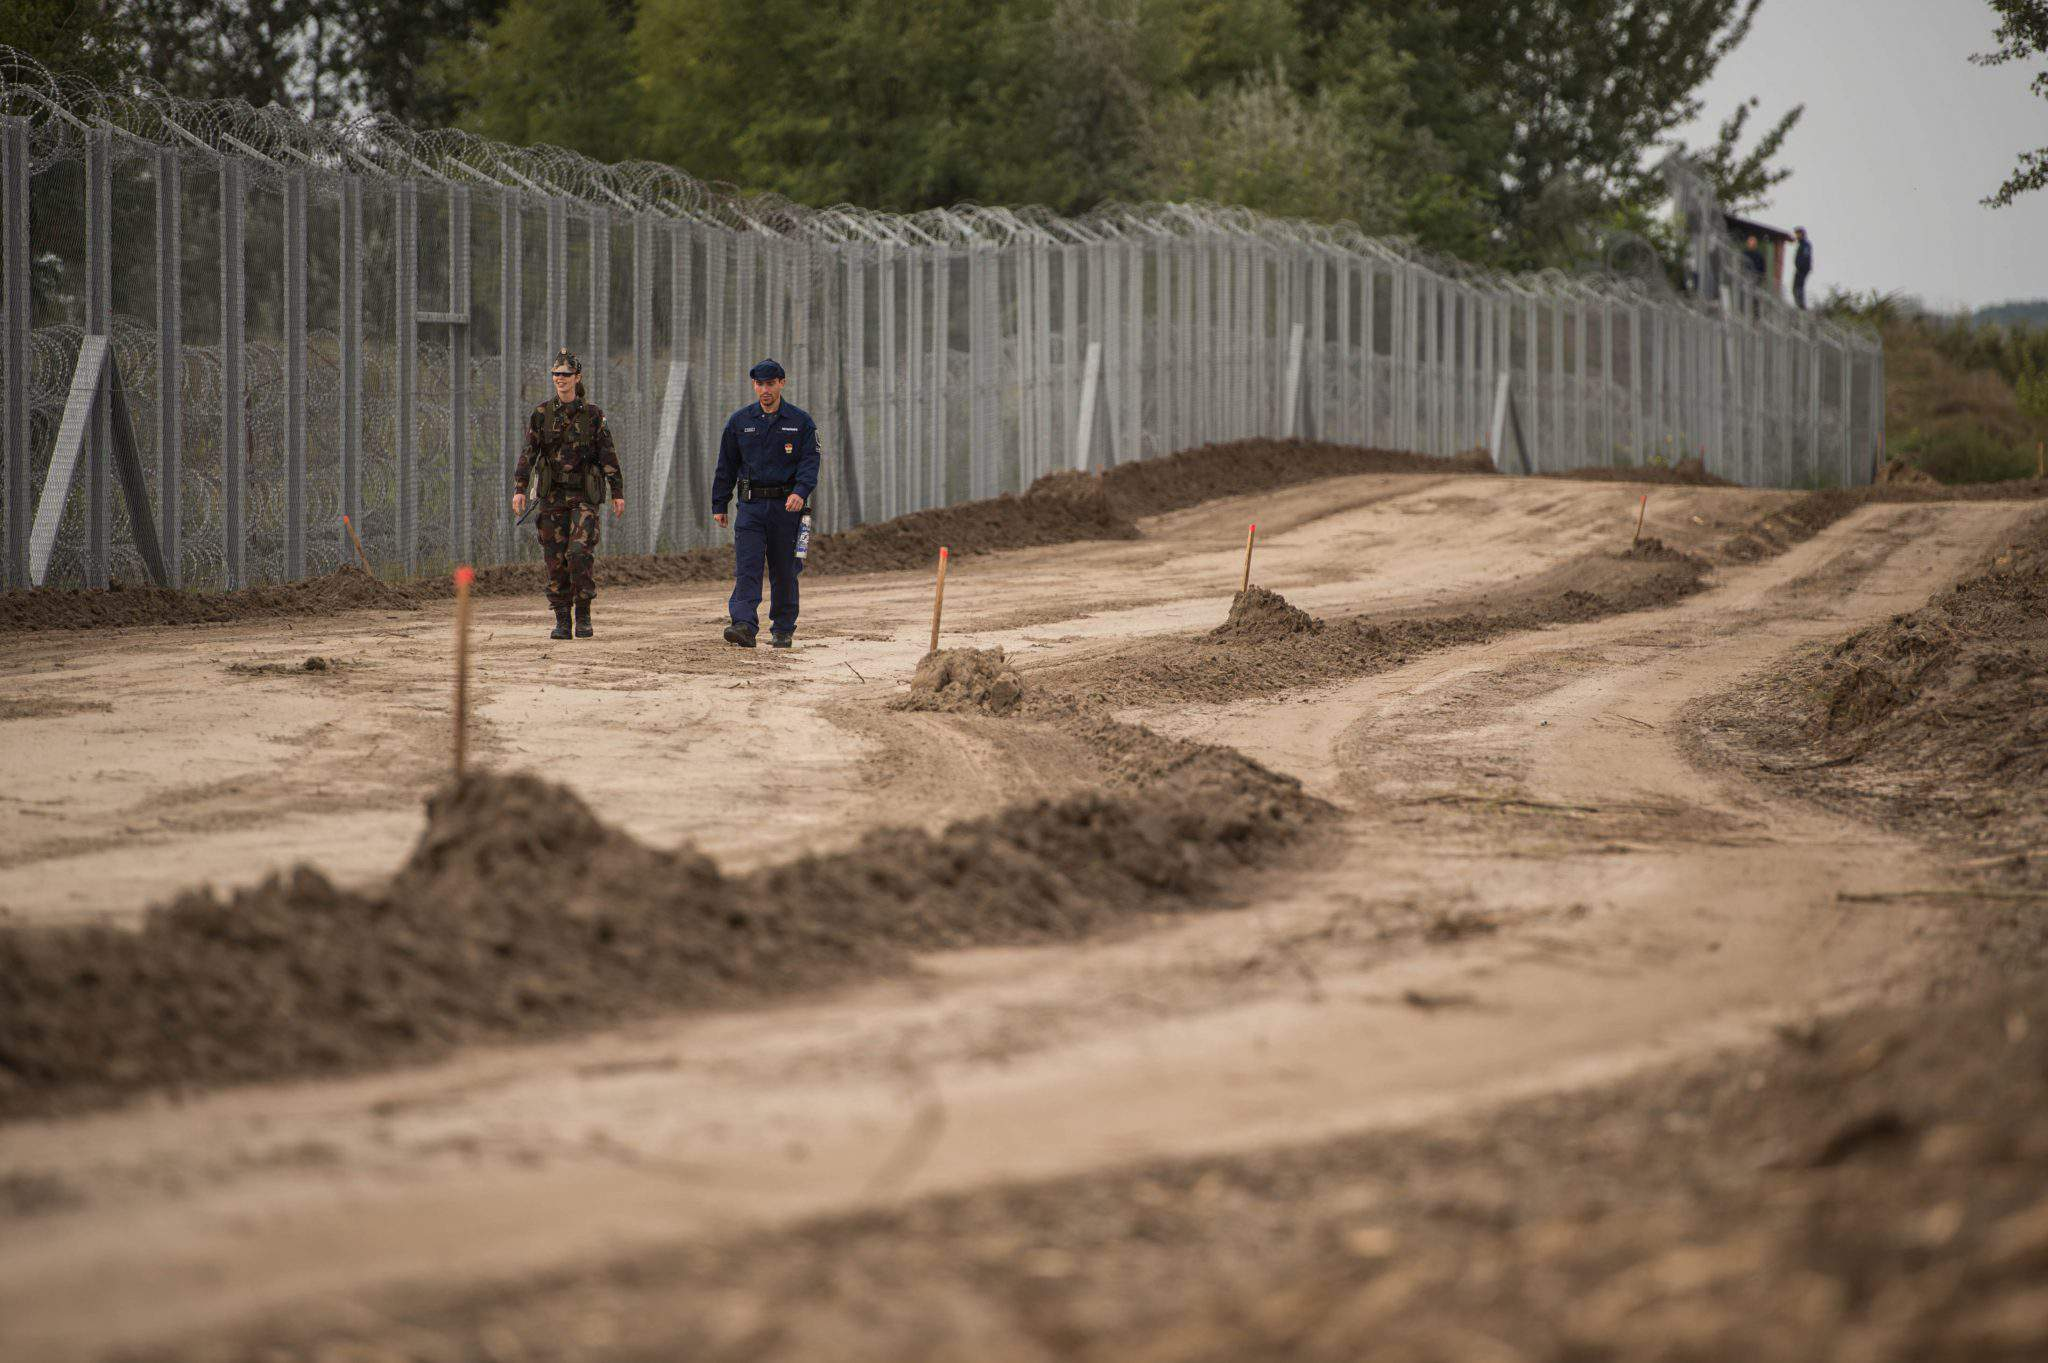 migration - Hungary border fence army